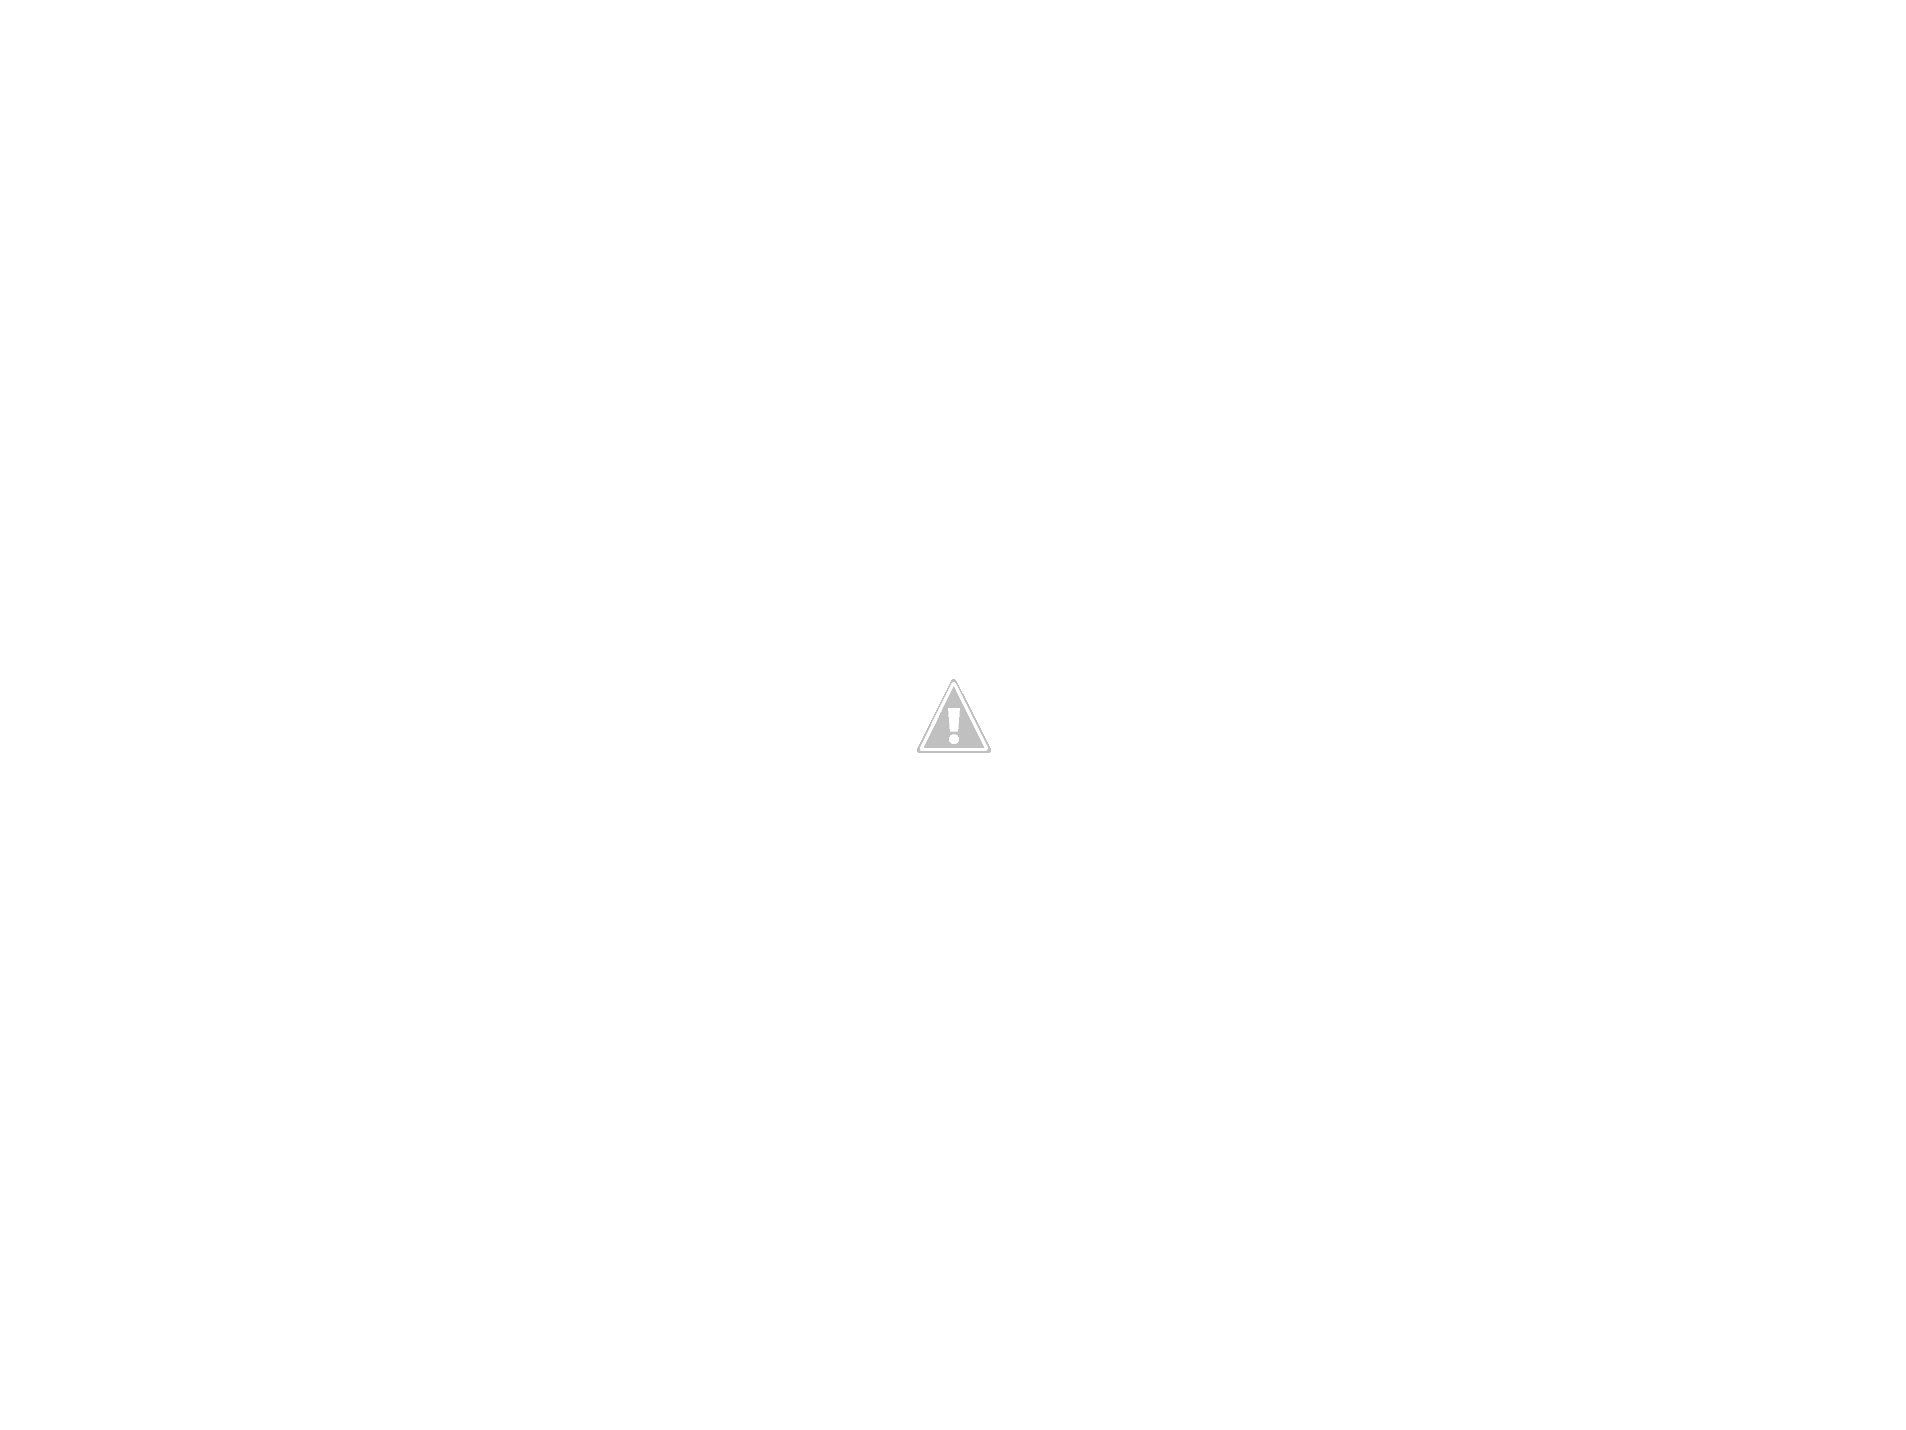 Fuse box help - Diesel Place : Chevrolet and GMC Diesel ...